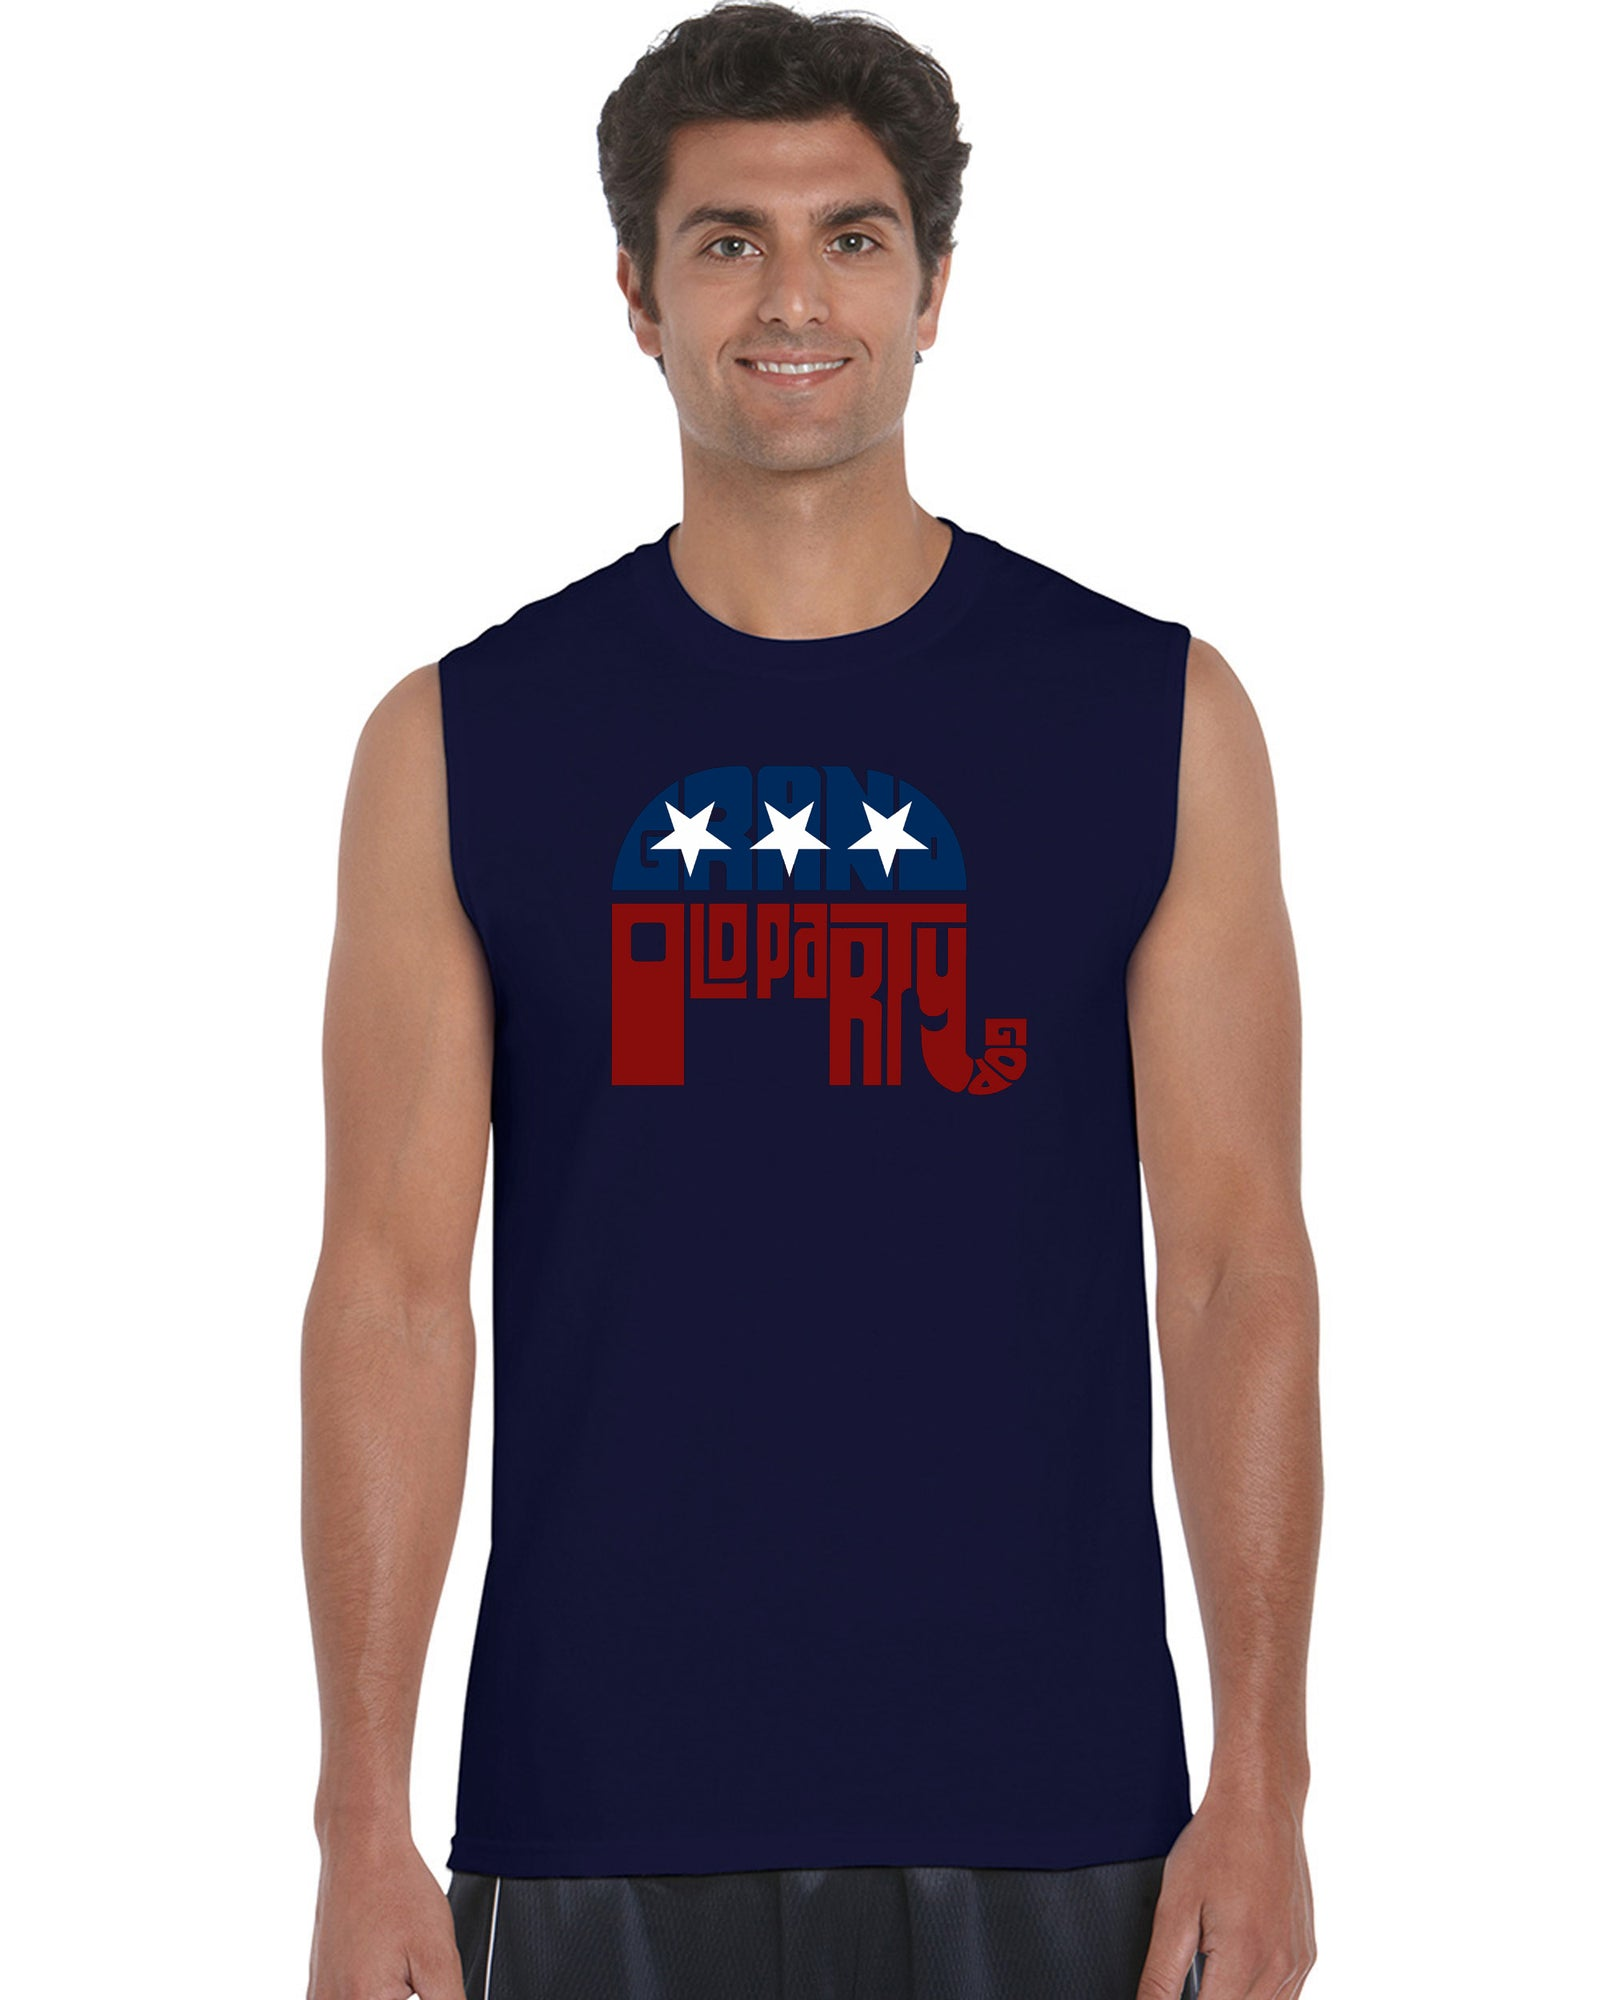 Men's Sleeveless T-shirt - REPUBLICAN - GRAND OLD PARTY